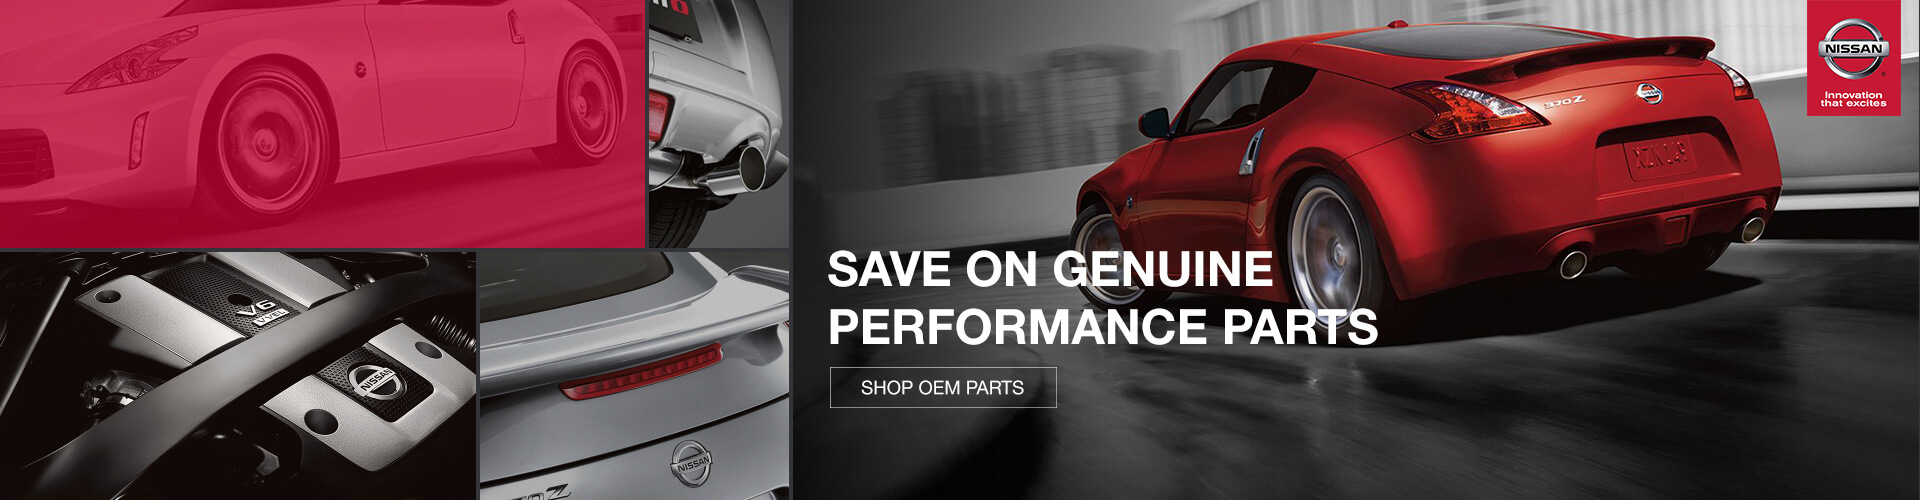 Nissan OEM Performance Parts